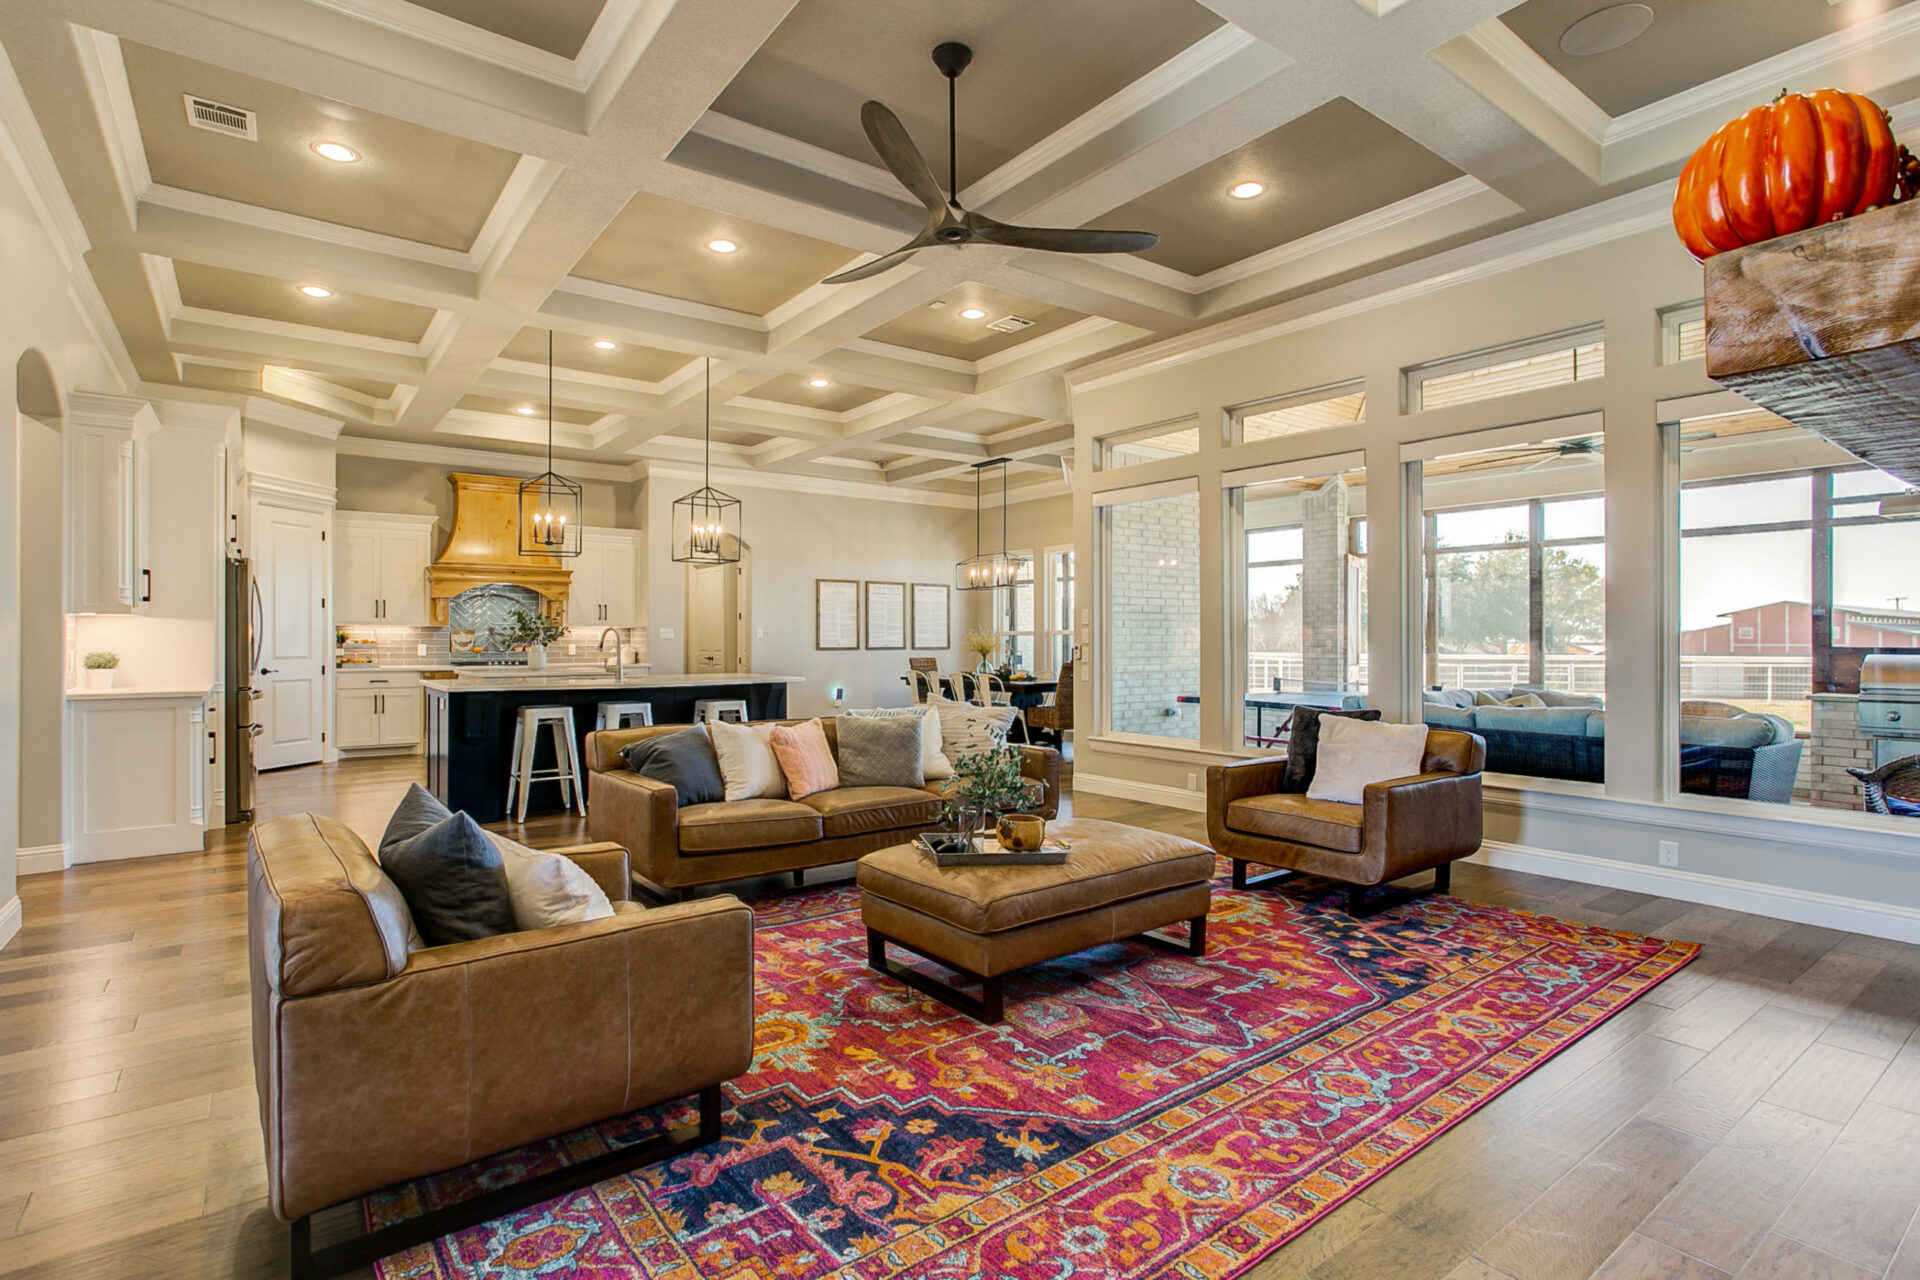 Signature Series: Modified Cape May – Plummer Residence